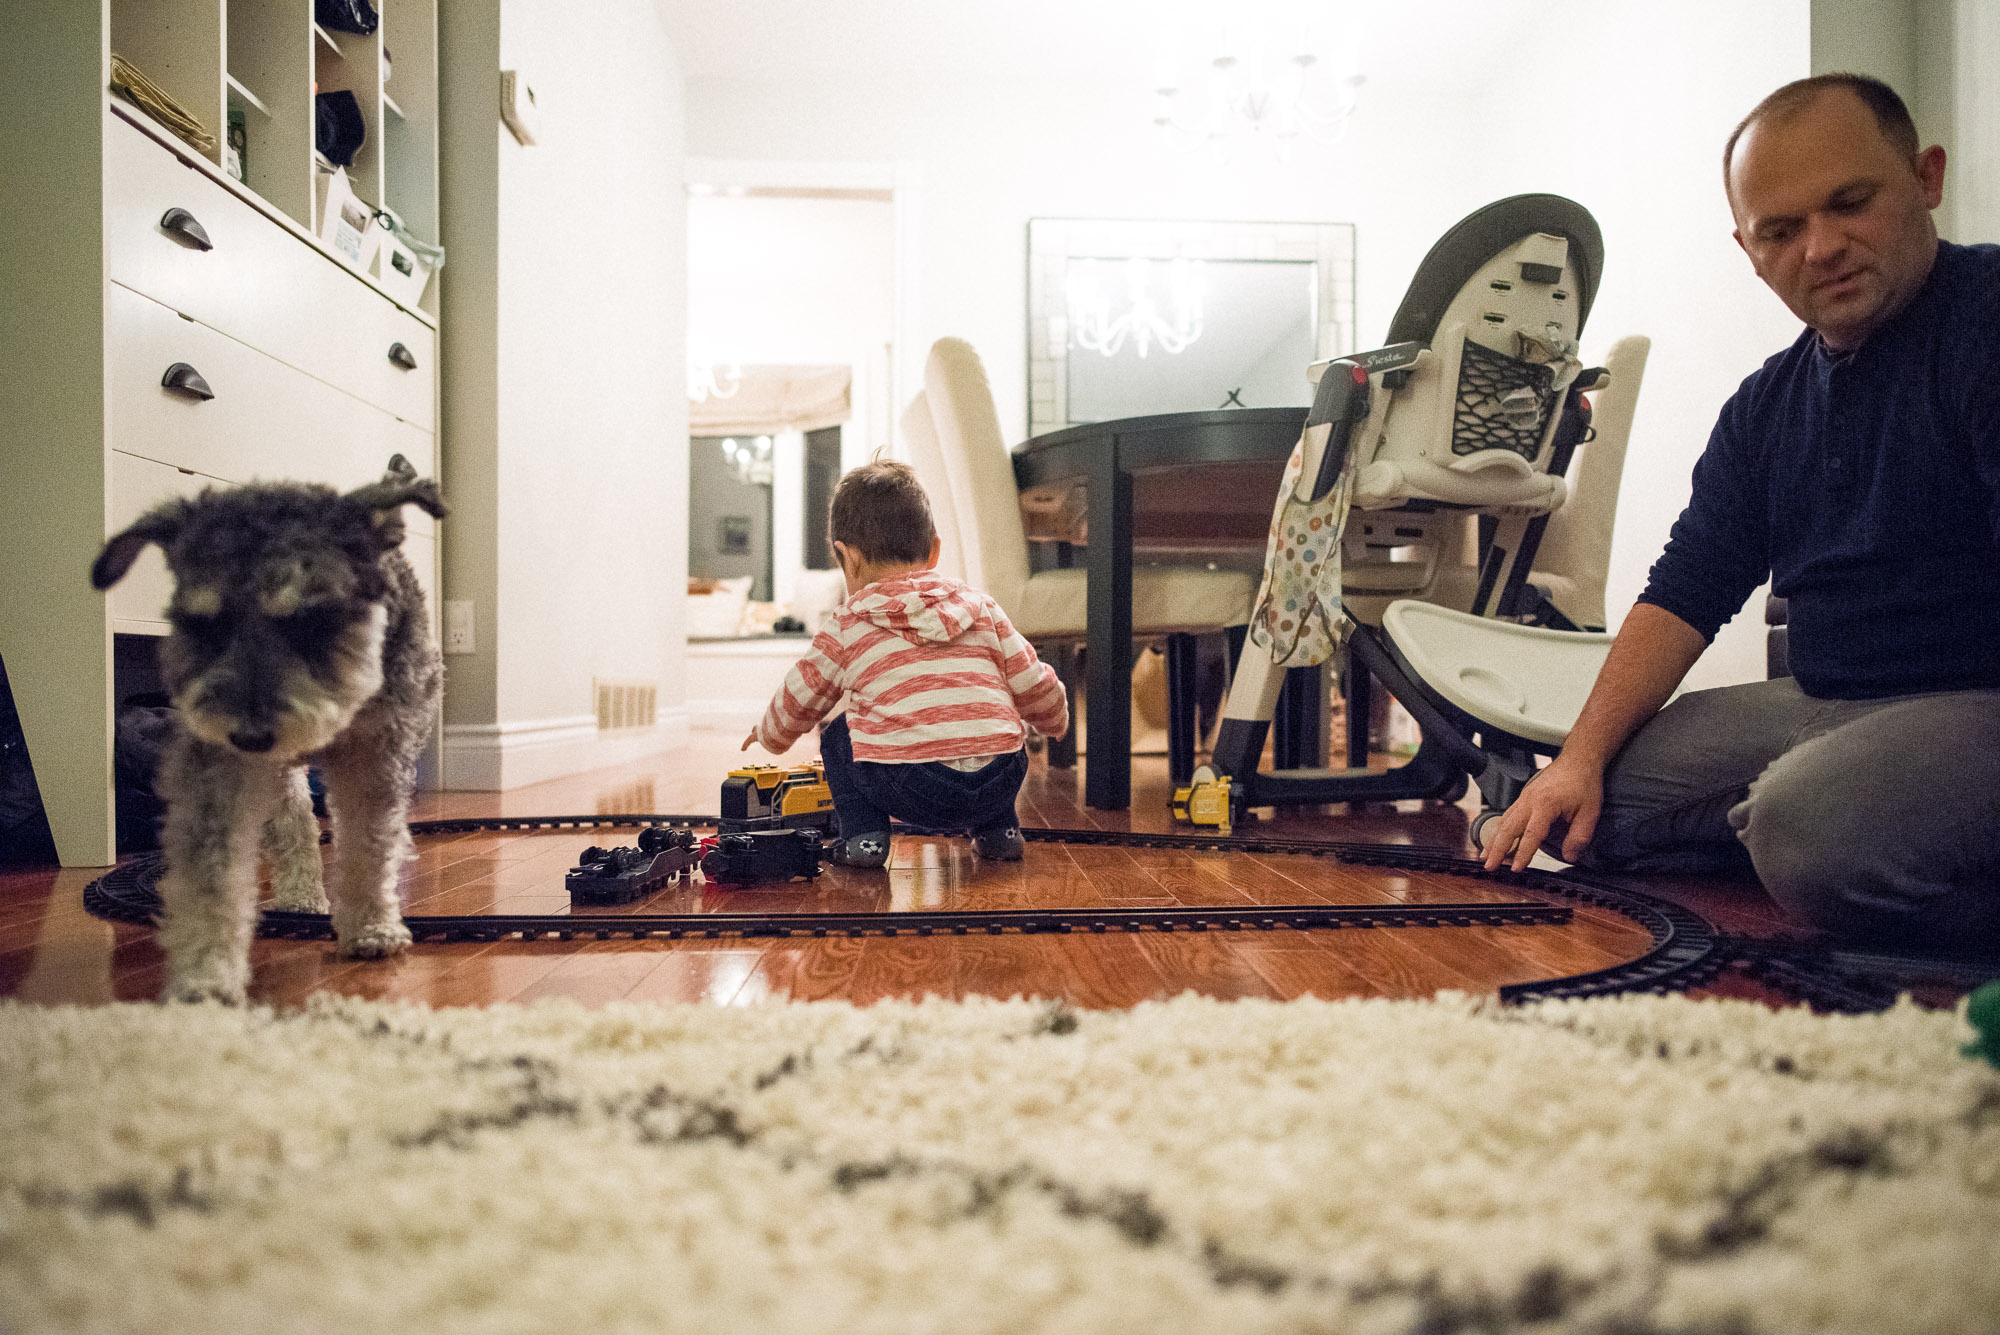 dad toddler and dog in the room with the toy train set